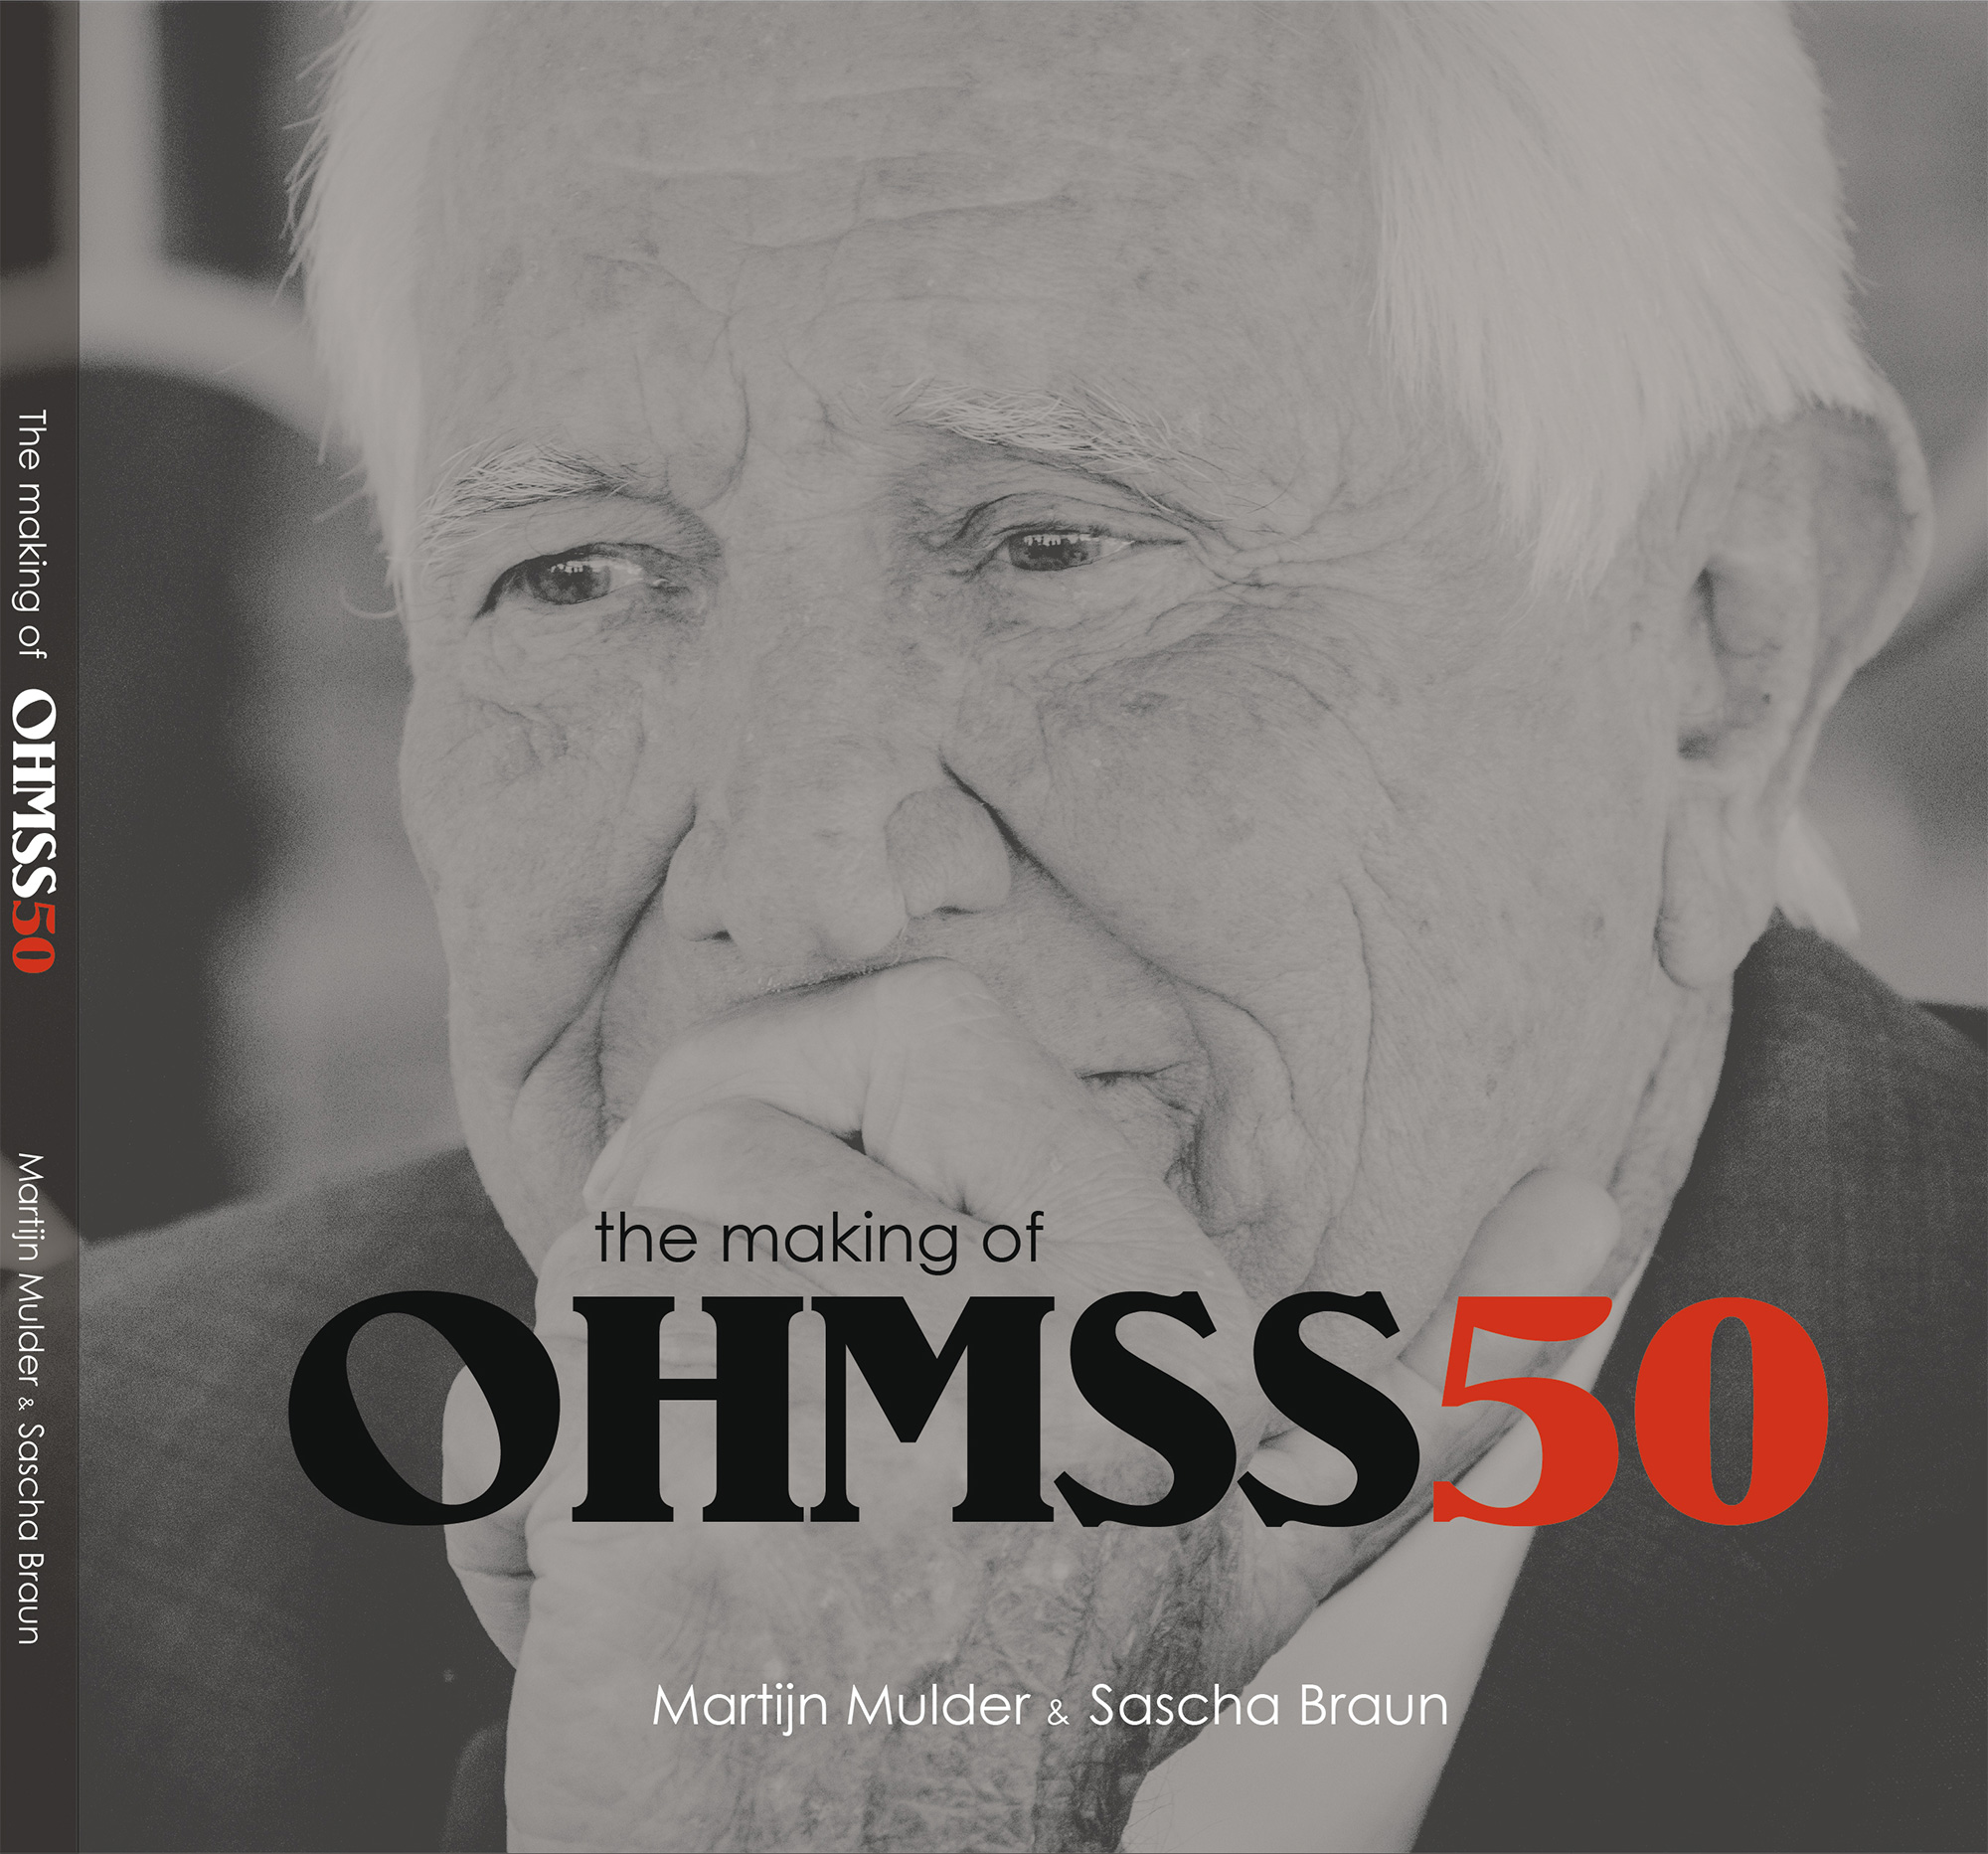 The Making of OHMSS50